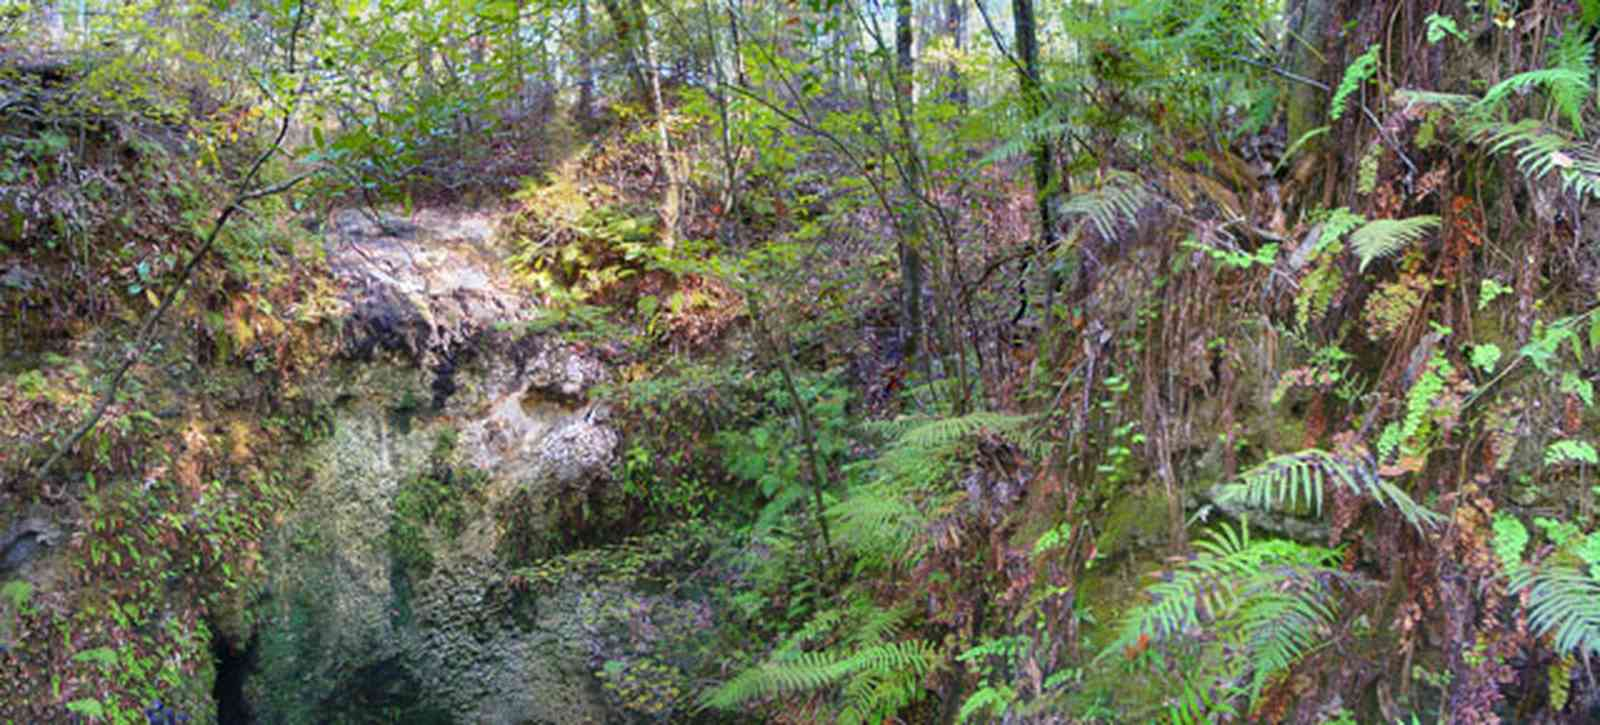 Chipley:-Falling-Waters-State-Park_02.jpg:  waterfalls, fern, sink hole, limestone rocks, upland pine forest